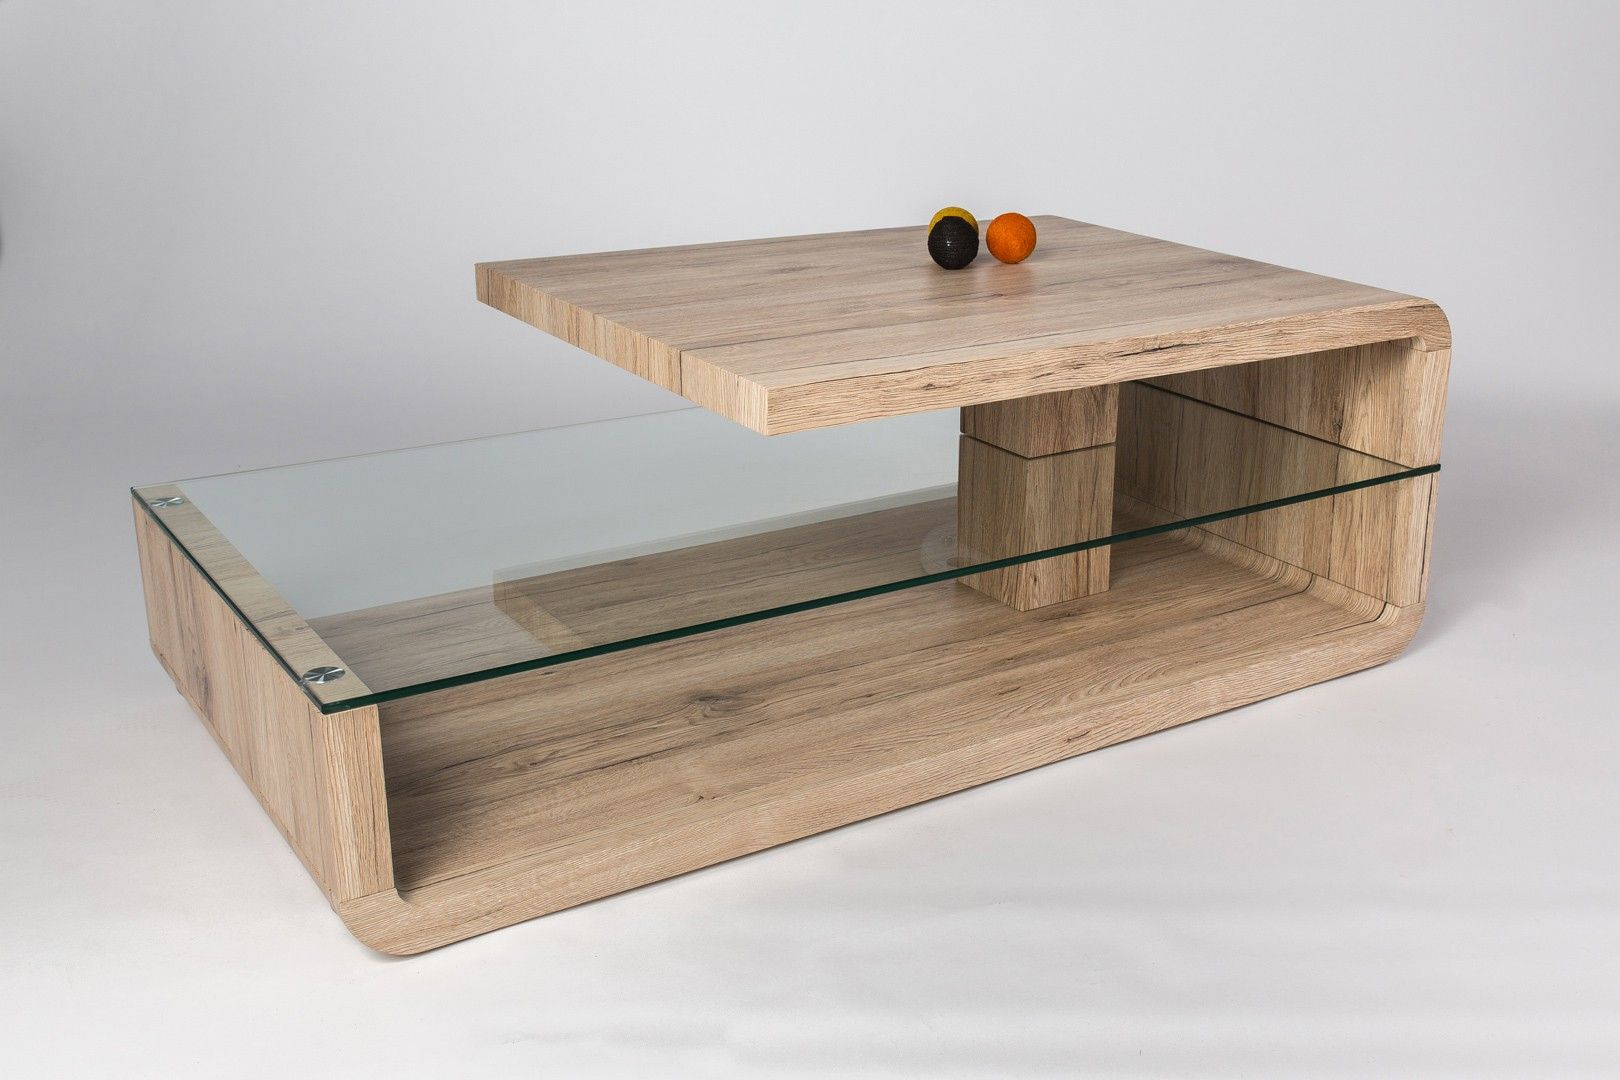 Table Basse Design Bois Et Verre Chene Sable Galati Table Basse Design Bois Table Basse Design Table Basse Bois